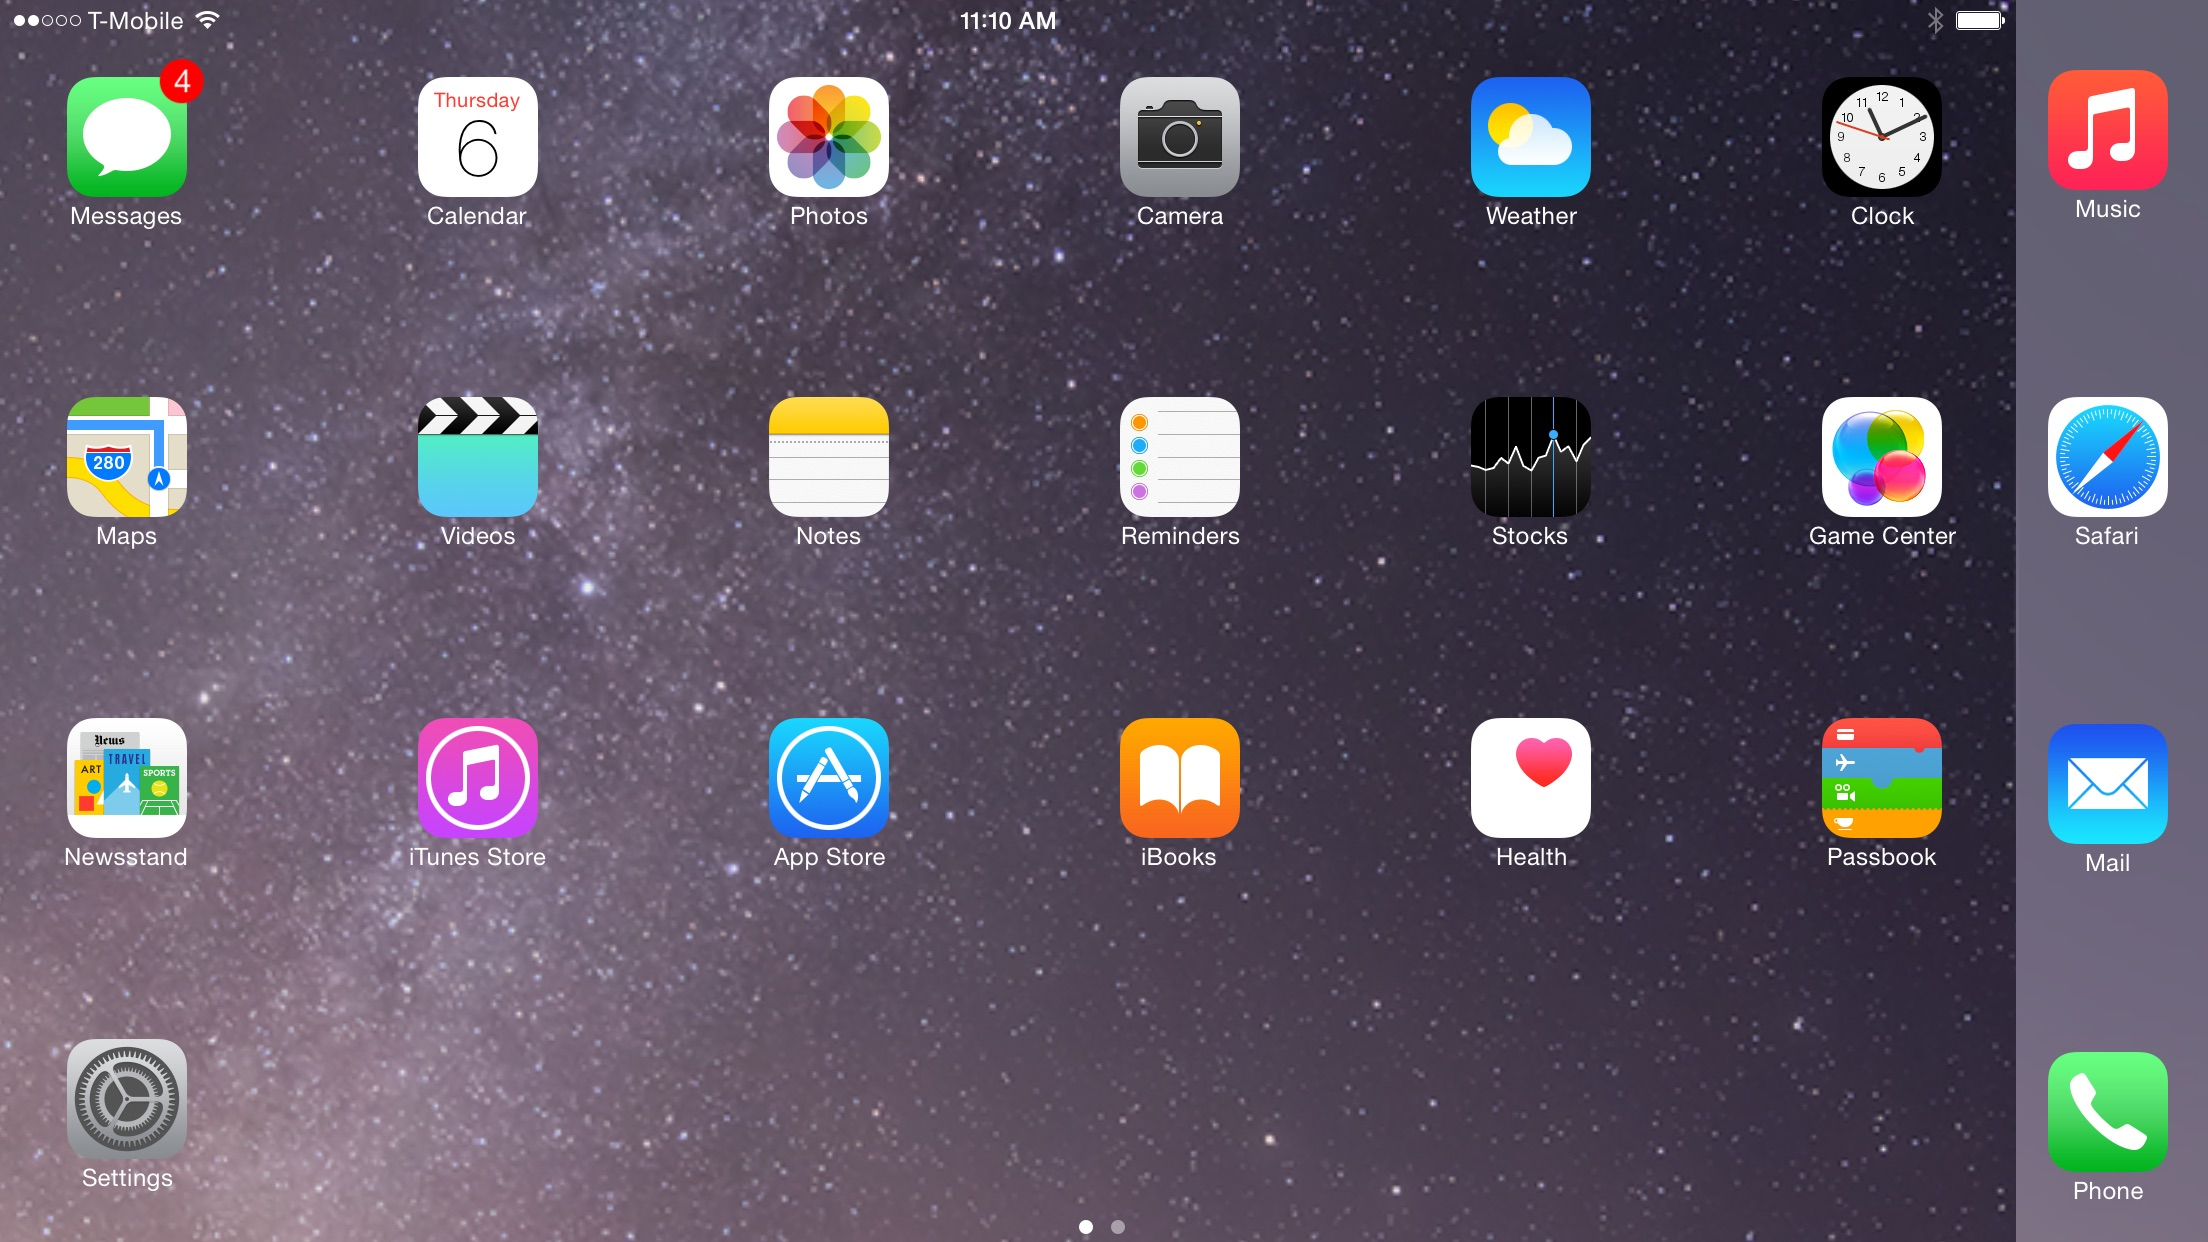 Upscale: Change the resolution on your jailbroken iPhone